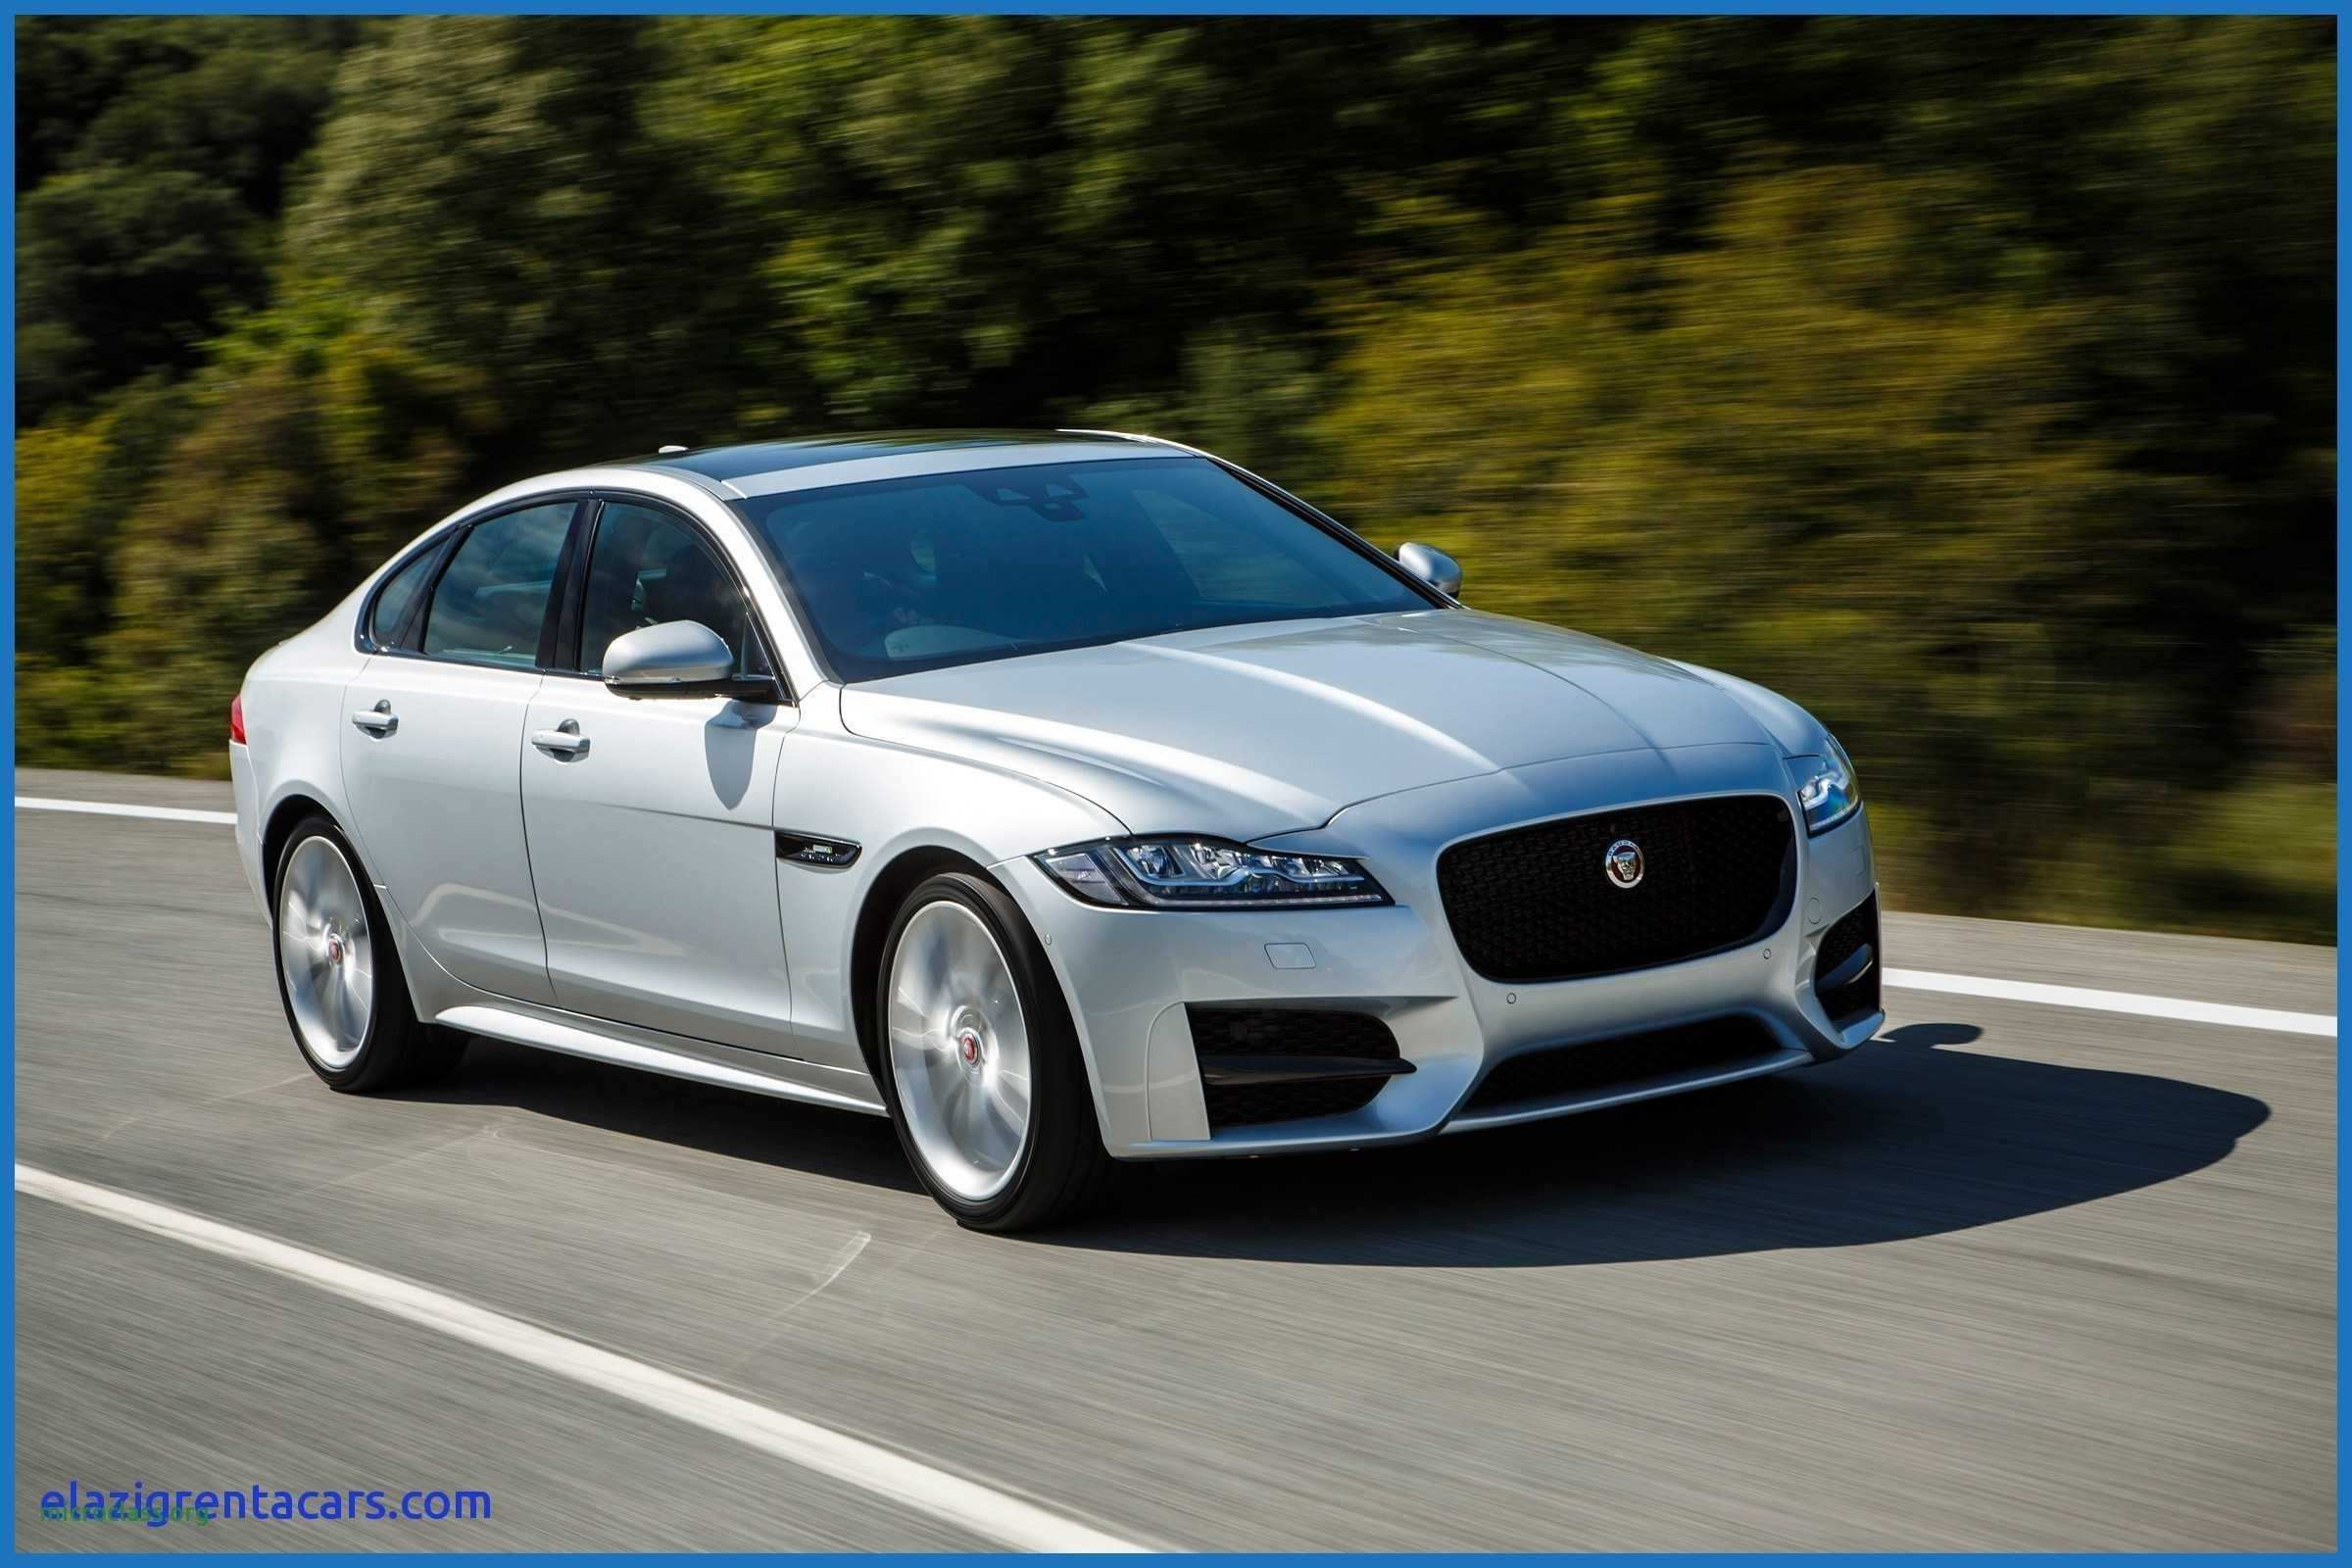 43 All New Jaguar Xf Facelift 2019 Speed Test